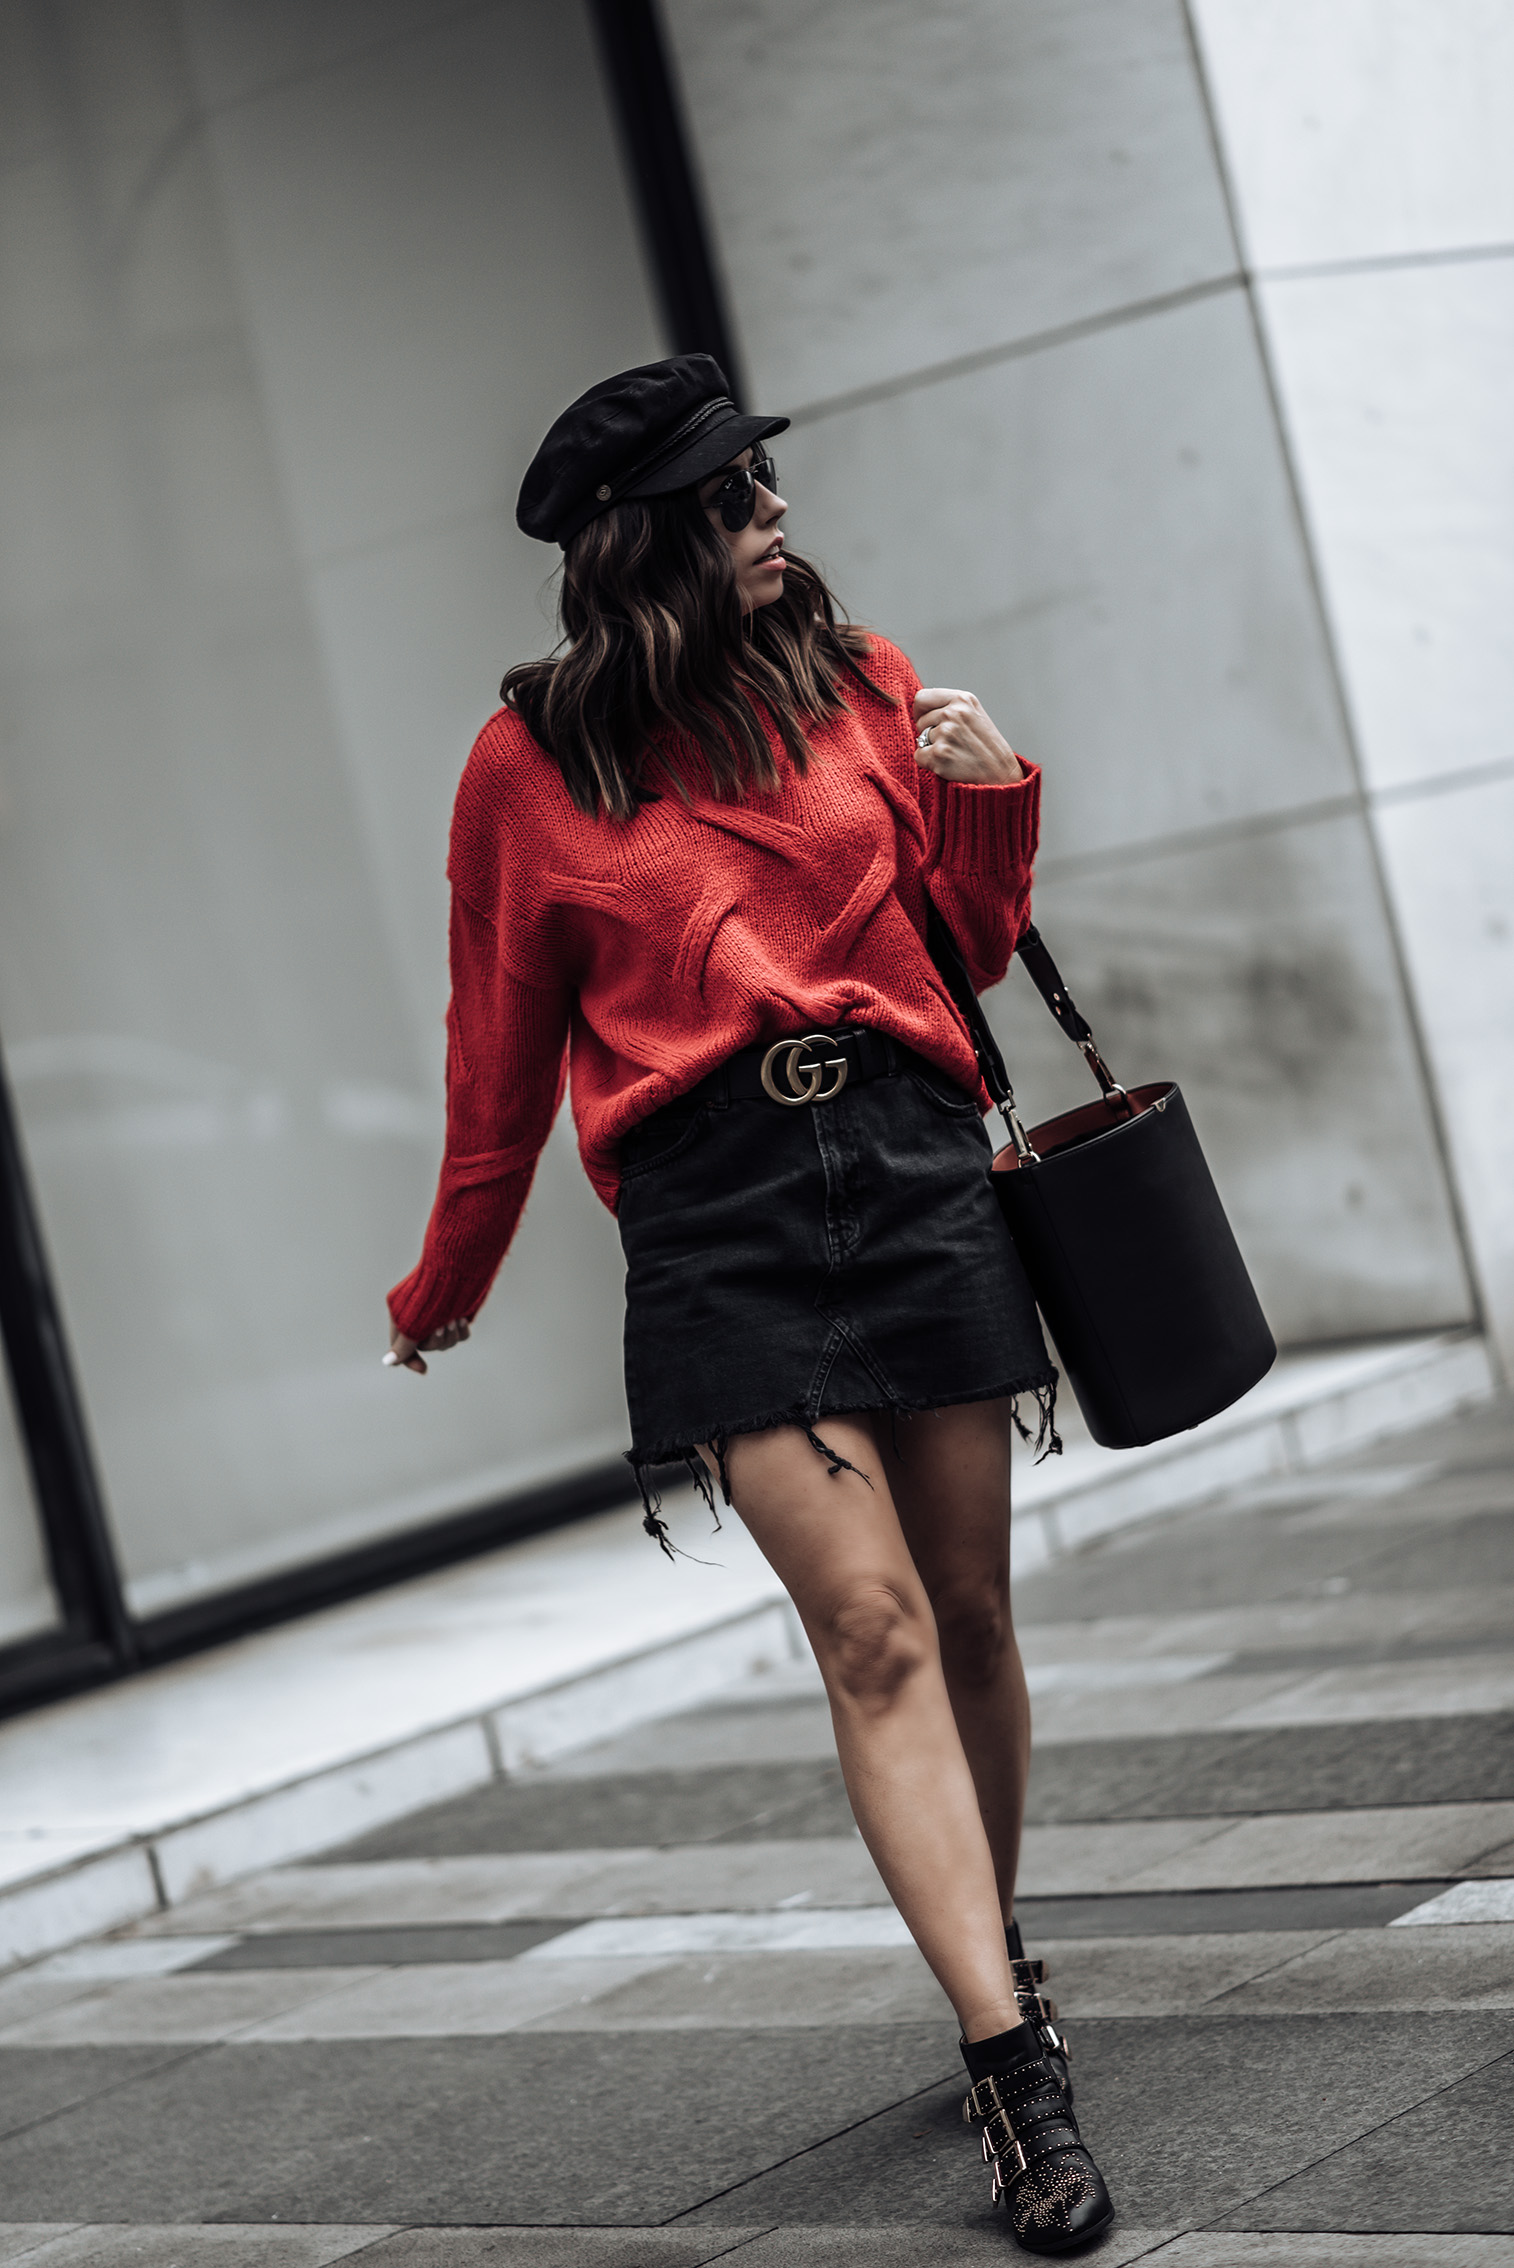 Red & Black | Red knit sweater (similar here and here) | Bucket bag (similar style here for only $25) | Black denim high waist mini skirt | Gucci Belt#gucci #streetstyle